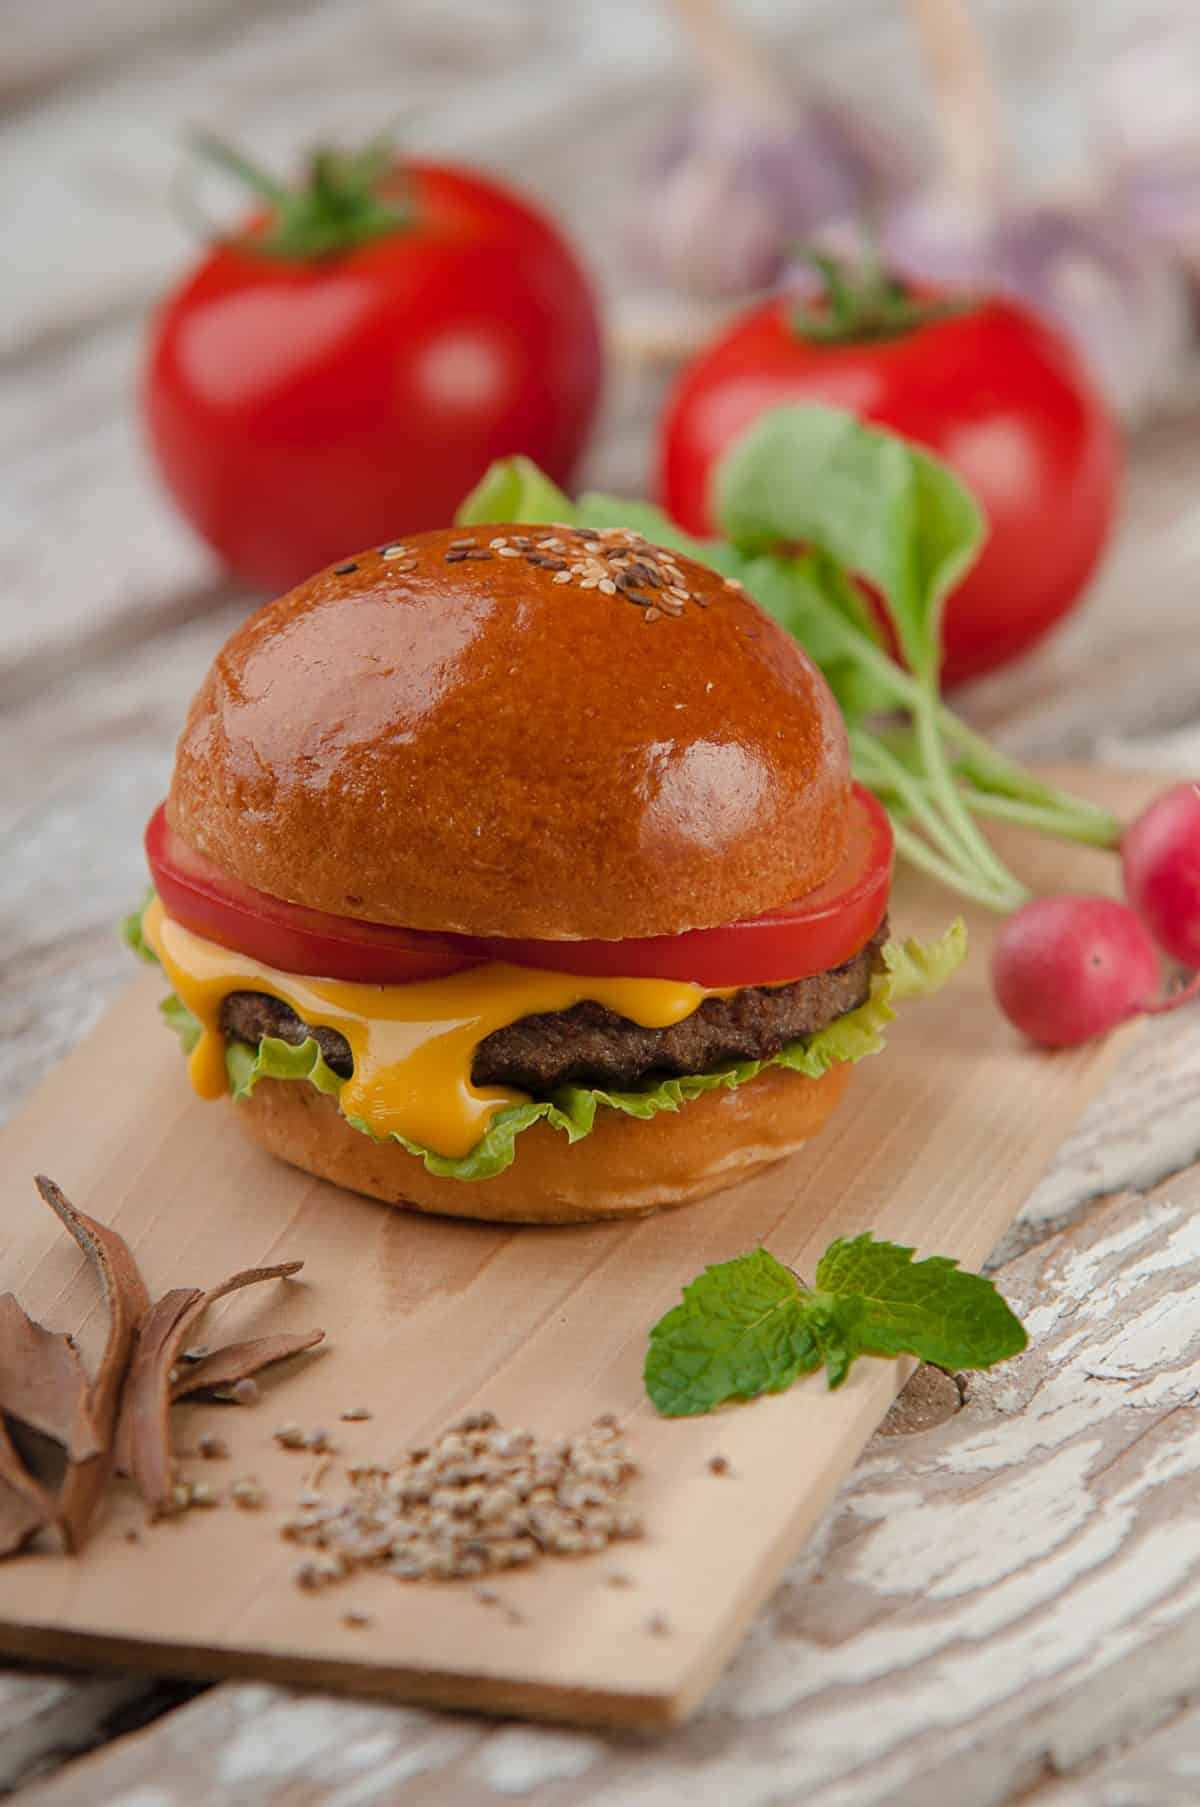 In this blog, I will be sharing more veggie burger nutritional facts and ingredients.